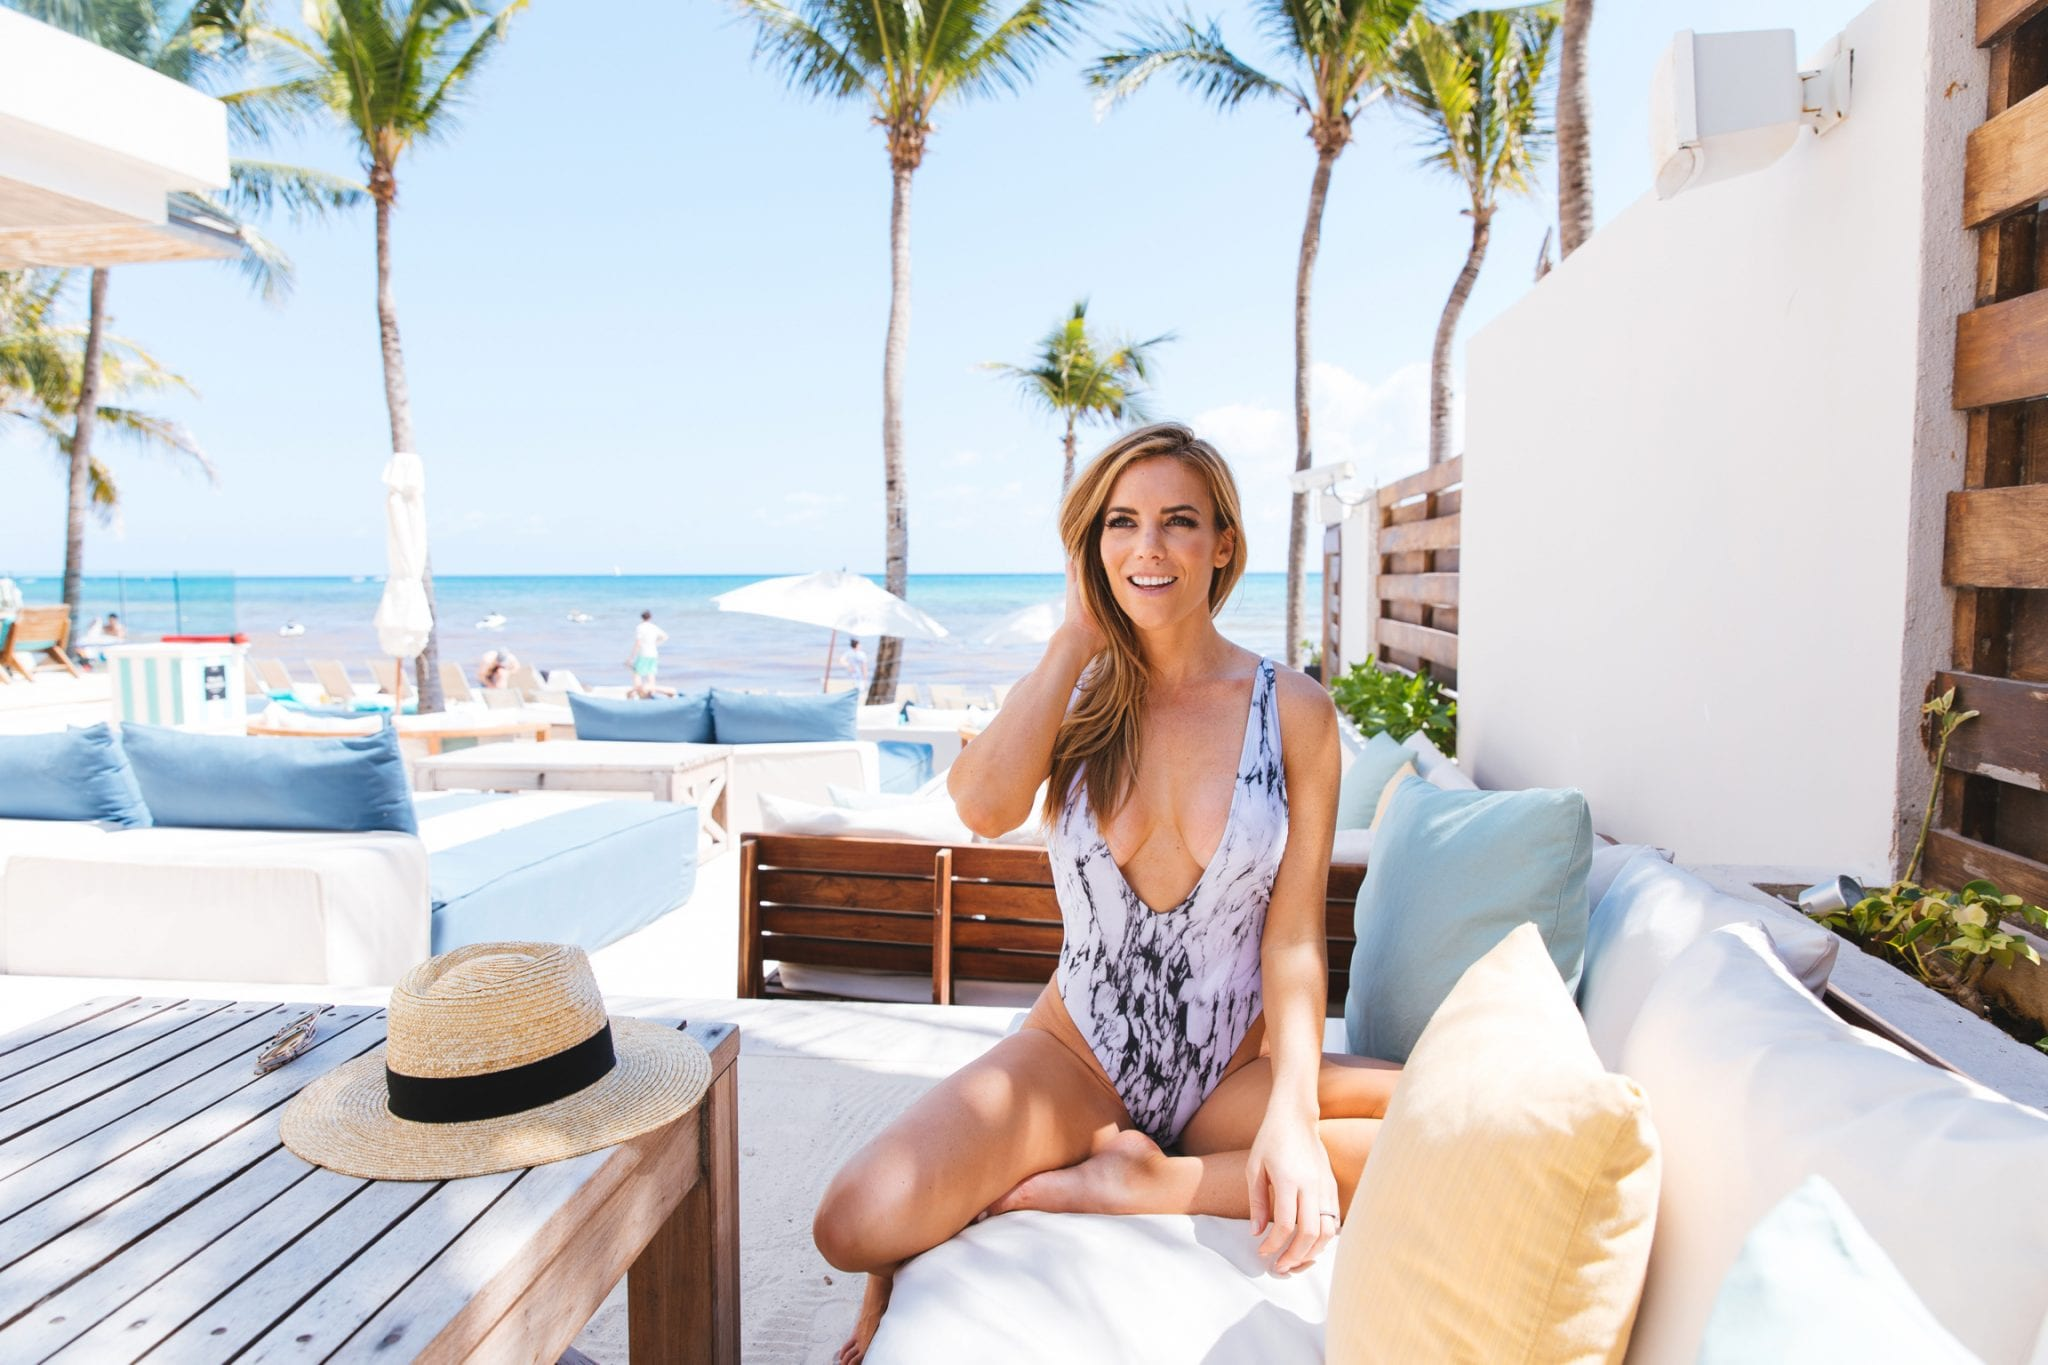 The best places to visit in playa del carmen, mexico travel, best hotels in playa del carmen, girls getaway, travel, instagramable travel desitinations